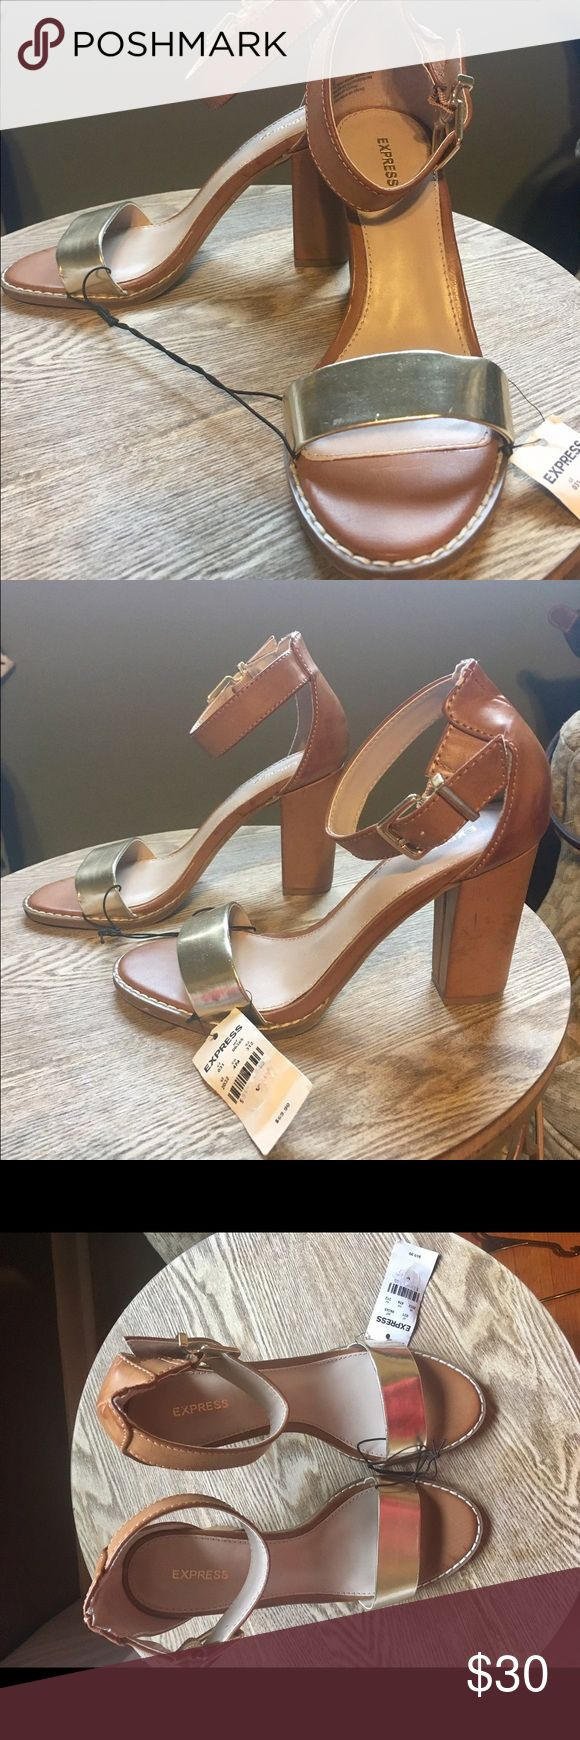 """NWT Express tan & gold size 6 heels! NWT Express tan heels with gold strap! From this summers collection! Size 6, roughly 3"""" heel! Express Shoes Heels"""